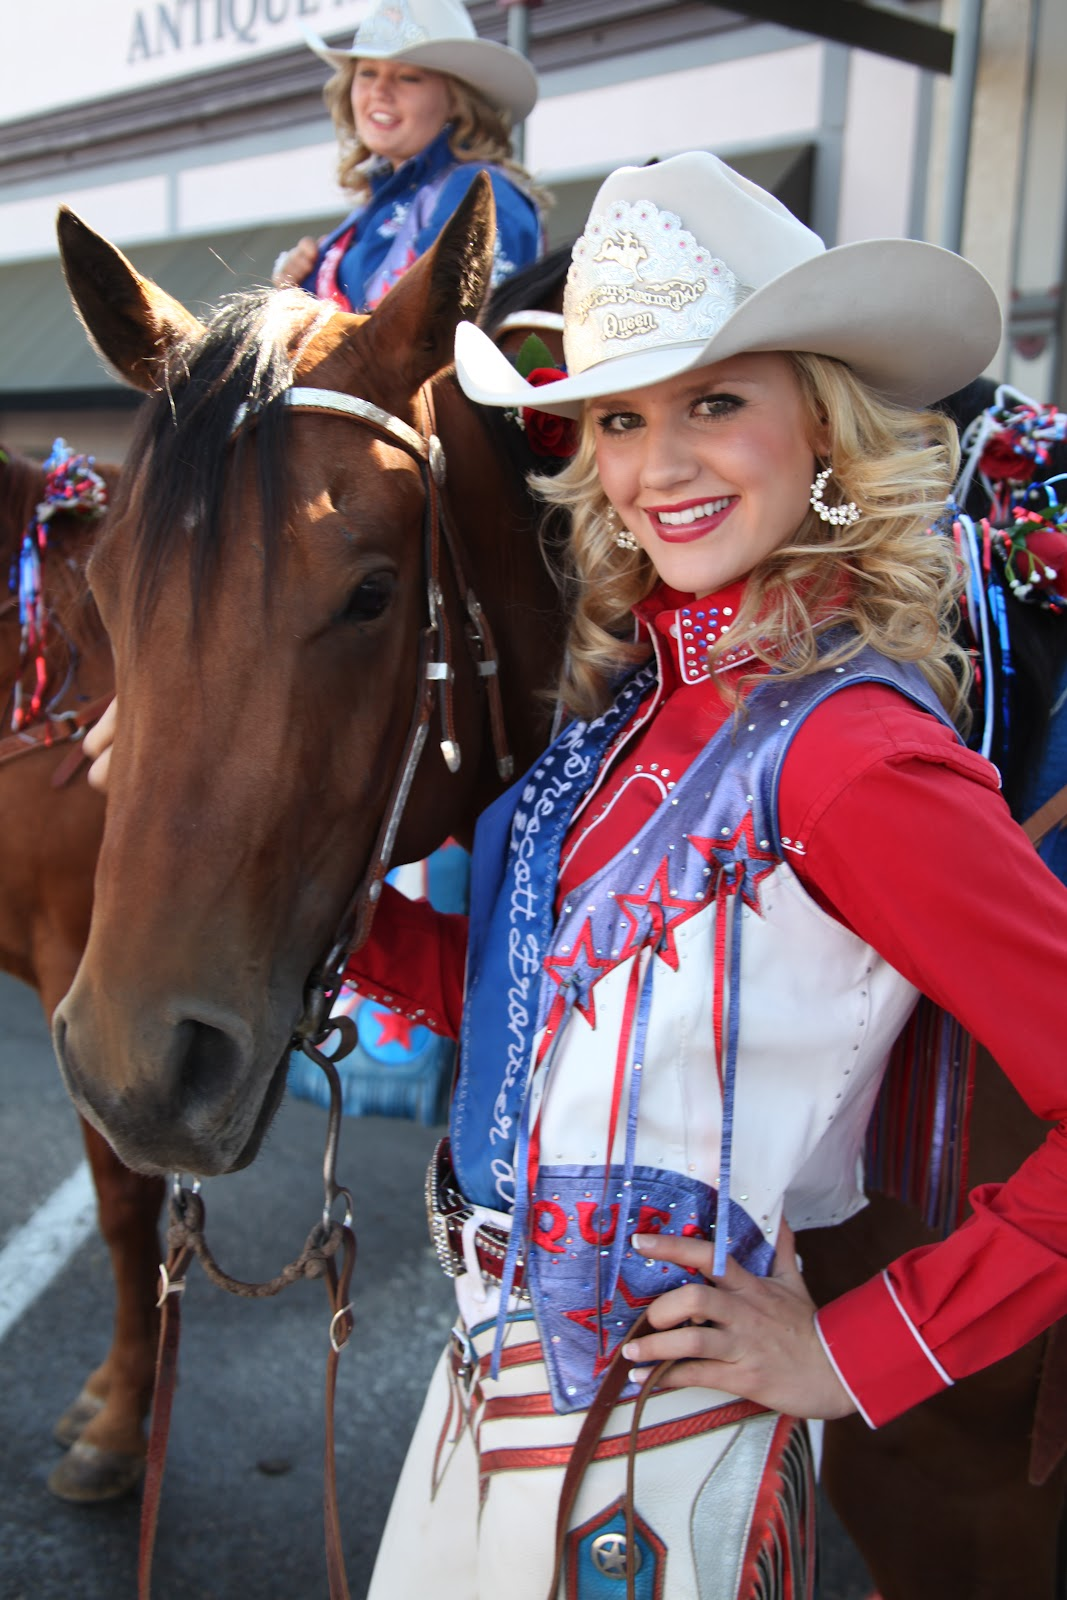 The Rancher S Daughter So You Wanna Be A Rodeo Queen